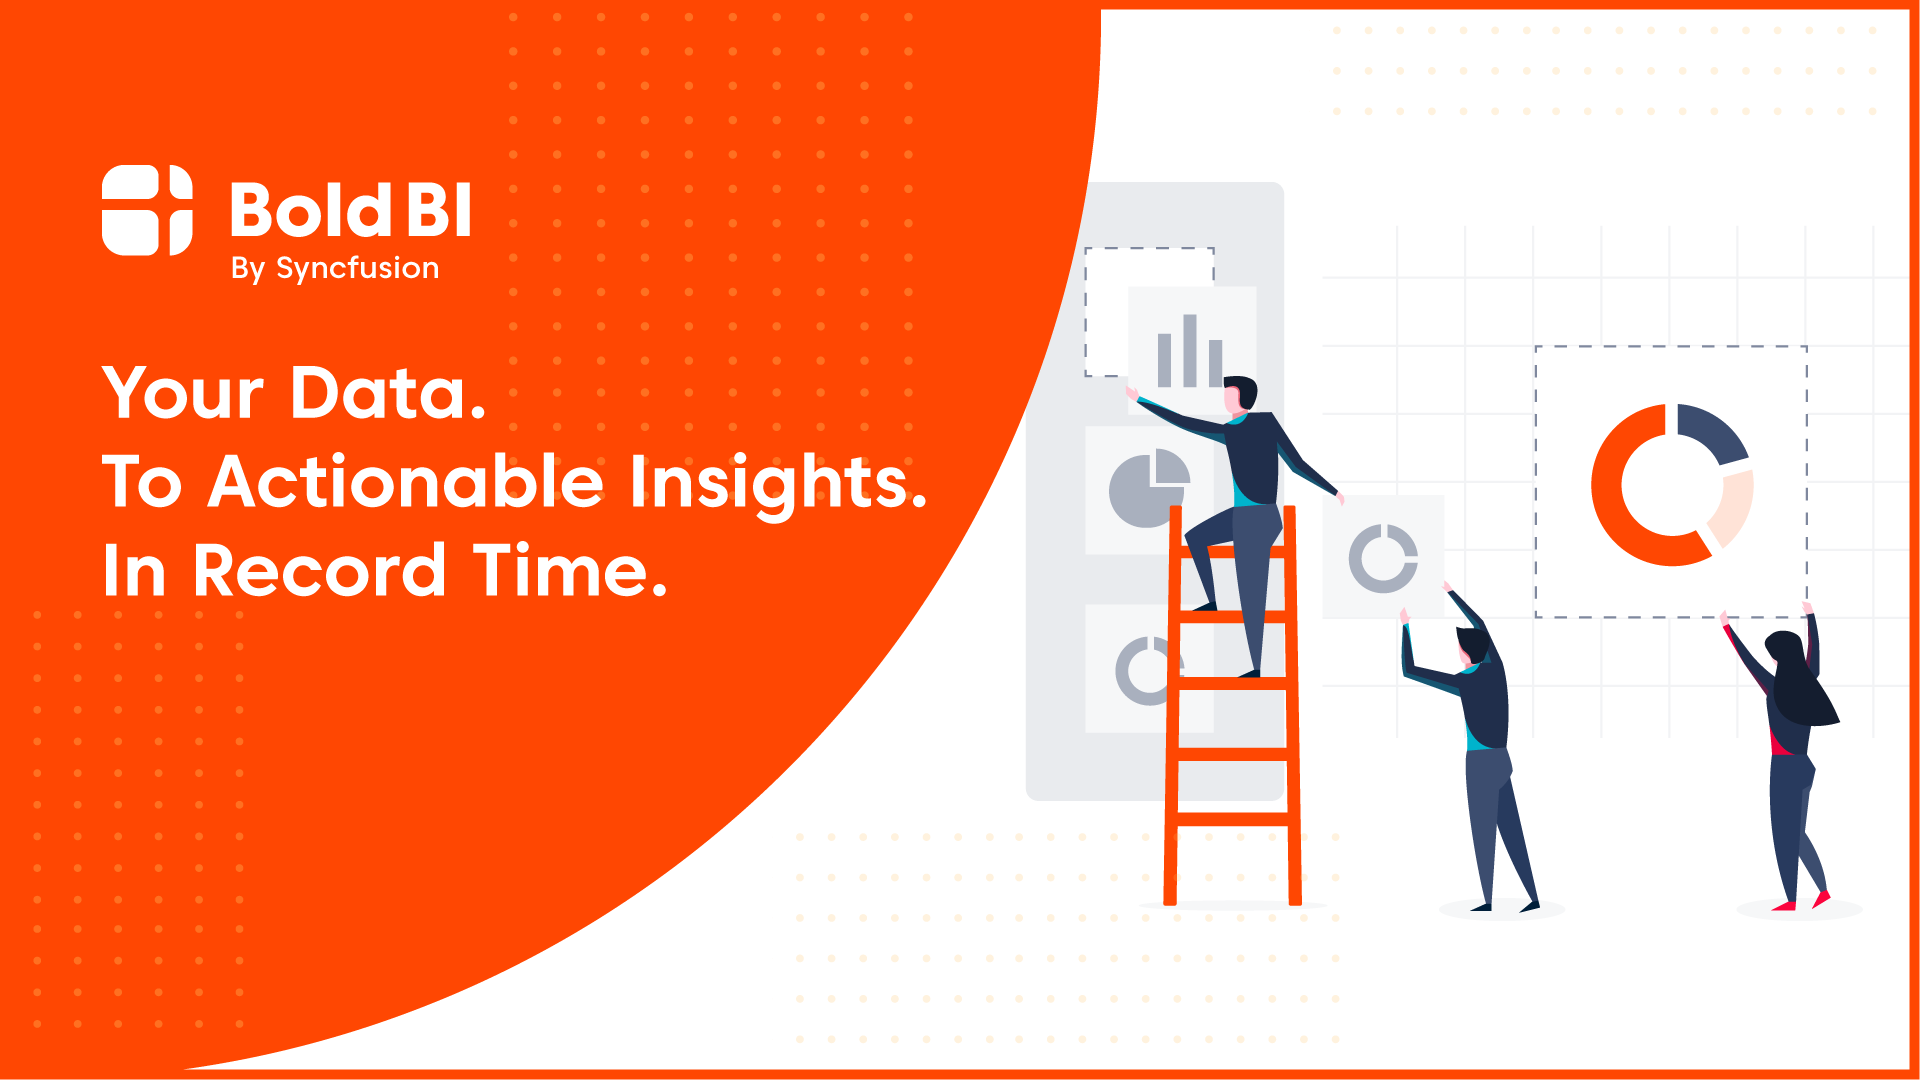 Enterprise BI - Your Data. To Actionable Insights. In Record Time.